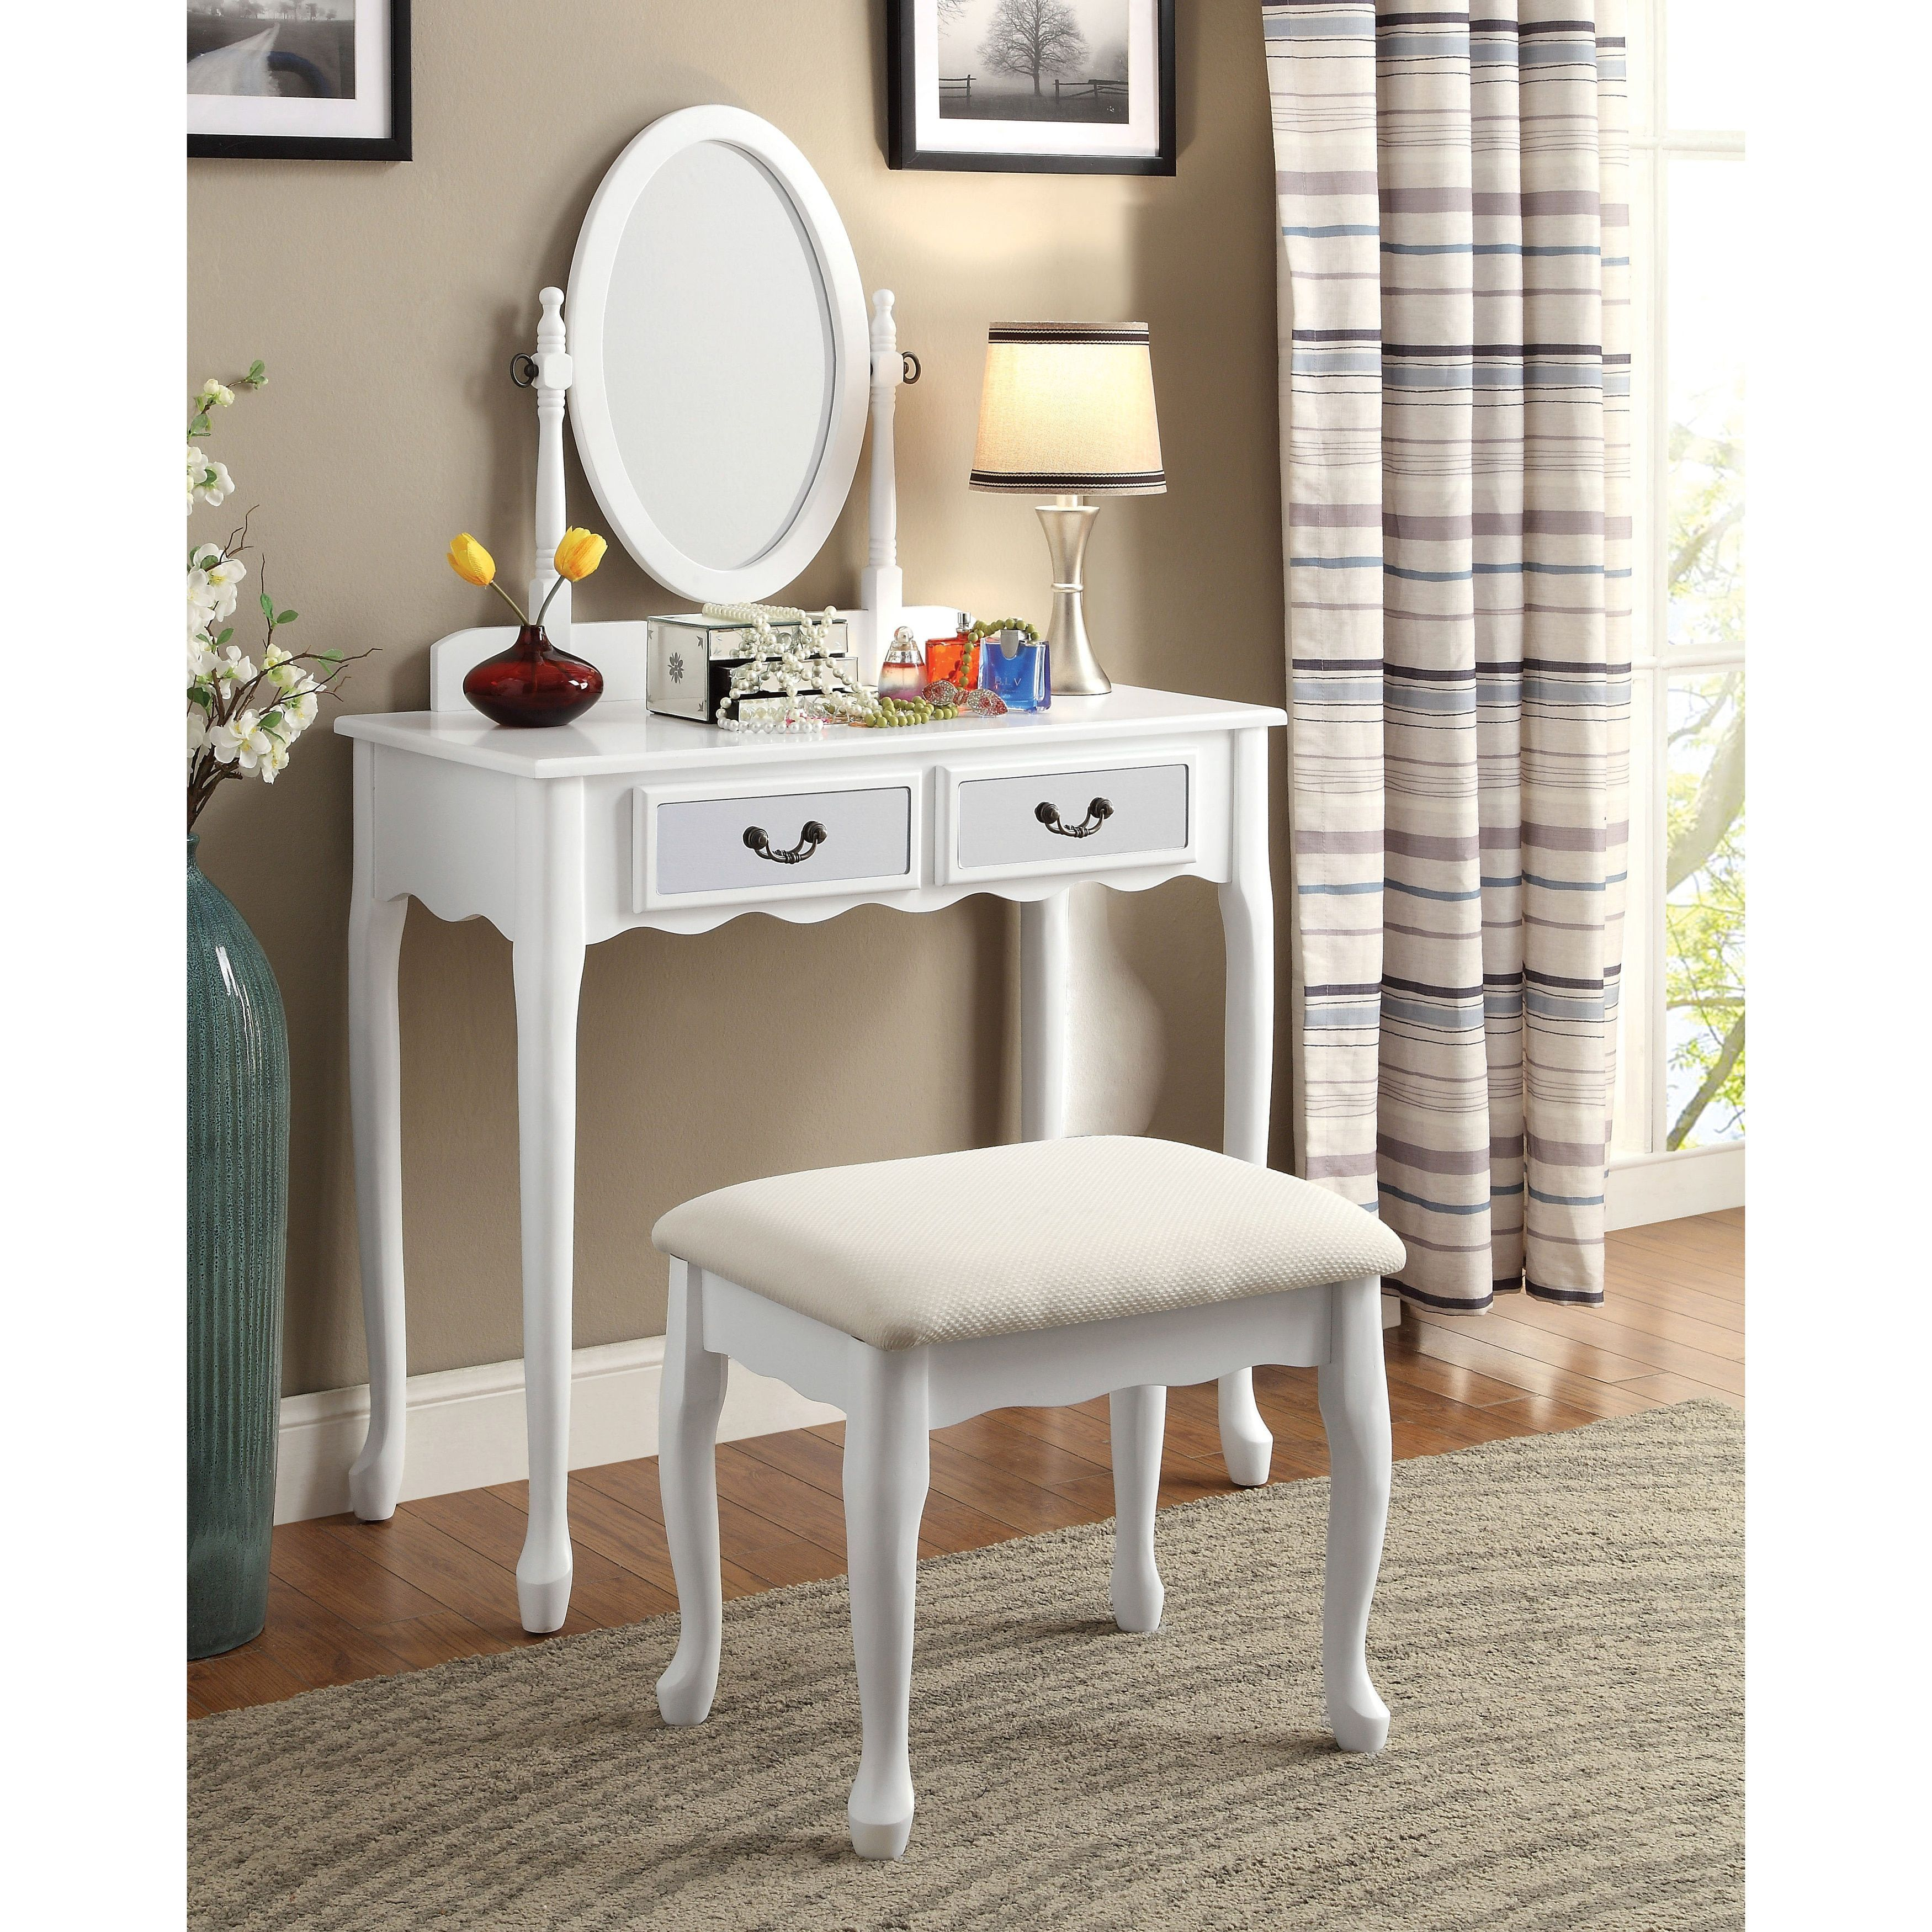 Furniture Of America Savanna 2 Piece Classic Vanity Table And Stool